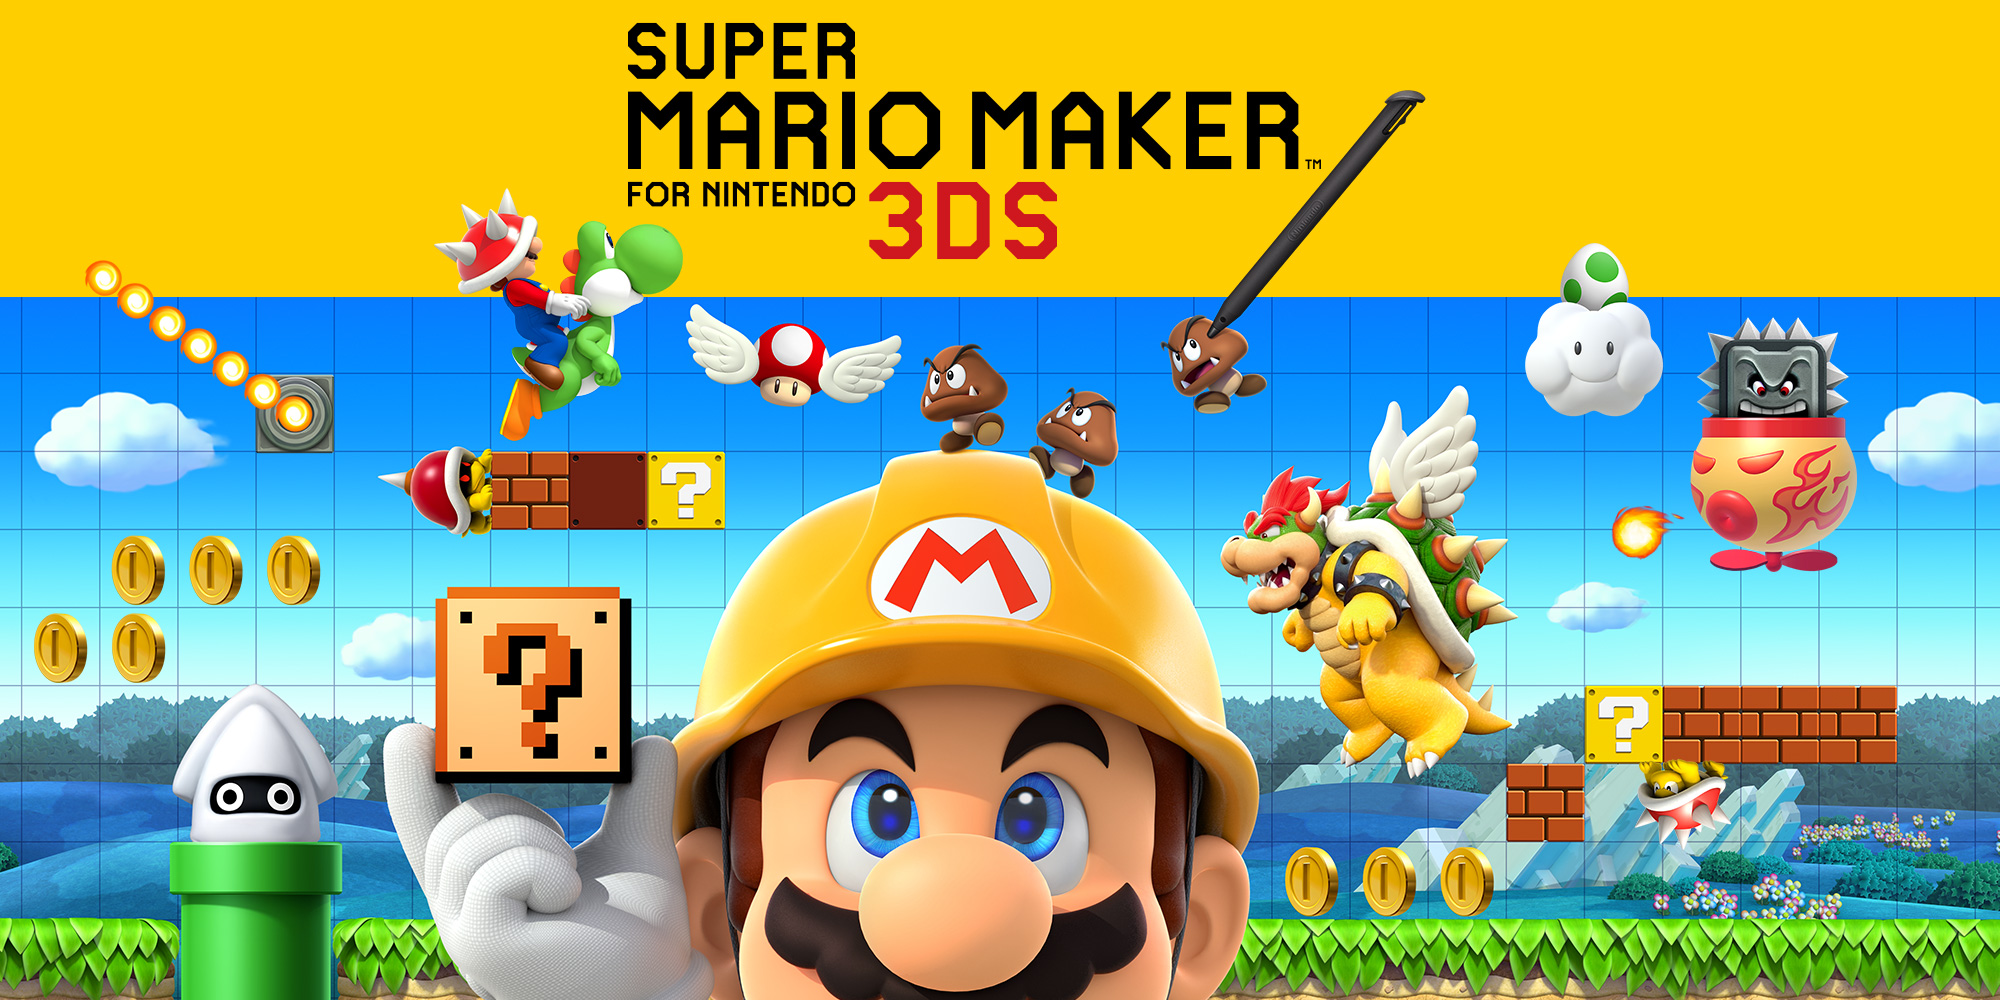 Super Mario Maker For Nintendo 3ds Nintendo 3ds Juegos Nintendo